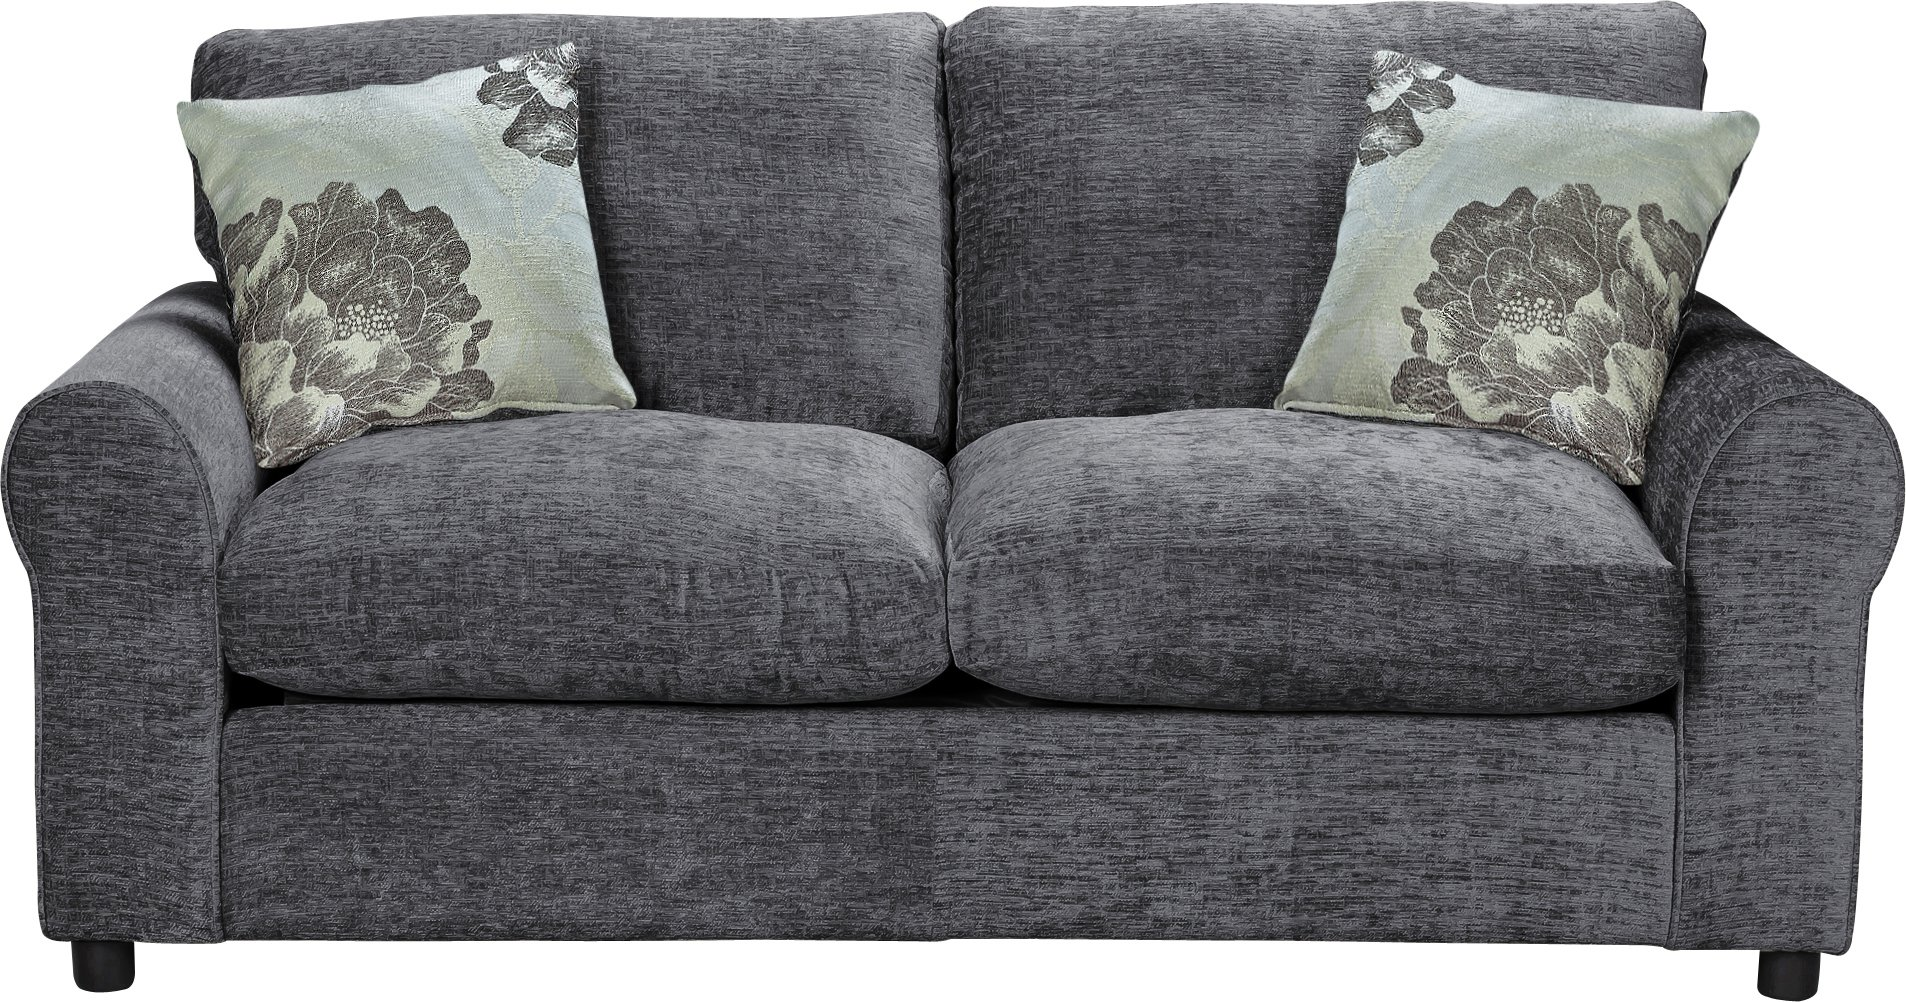 HOME Tessa Fabric Sofa Bed   Charcoal